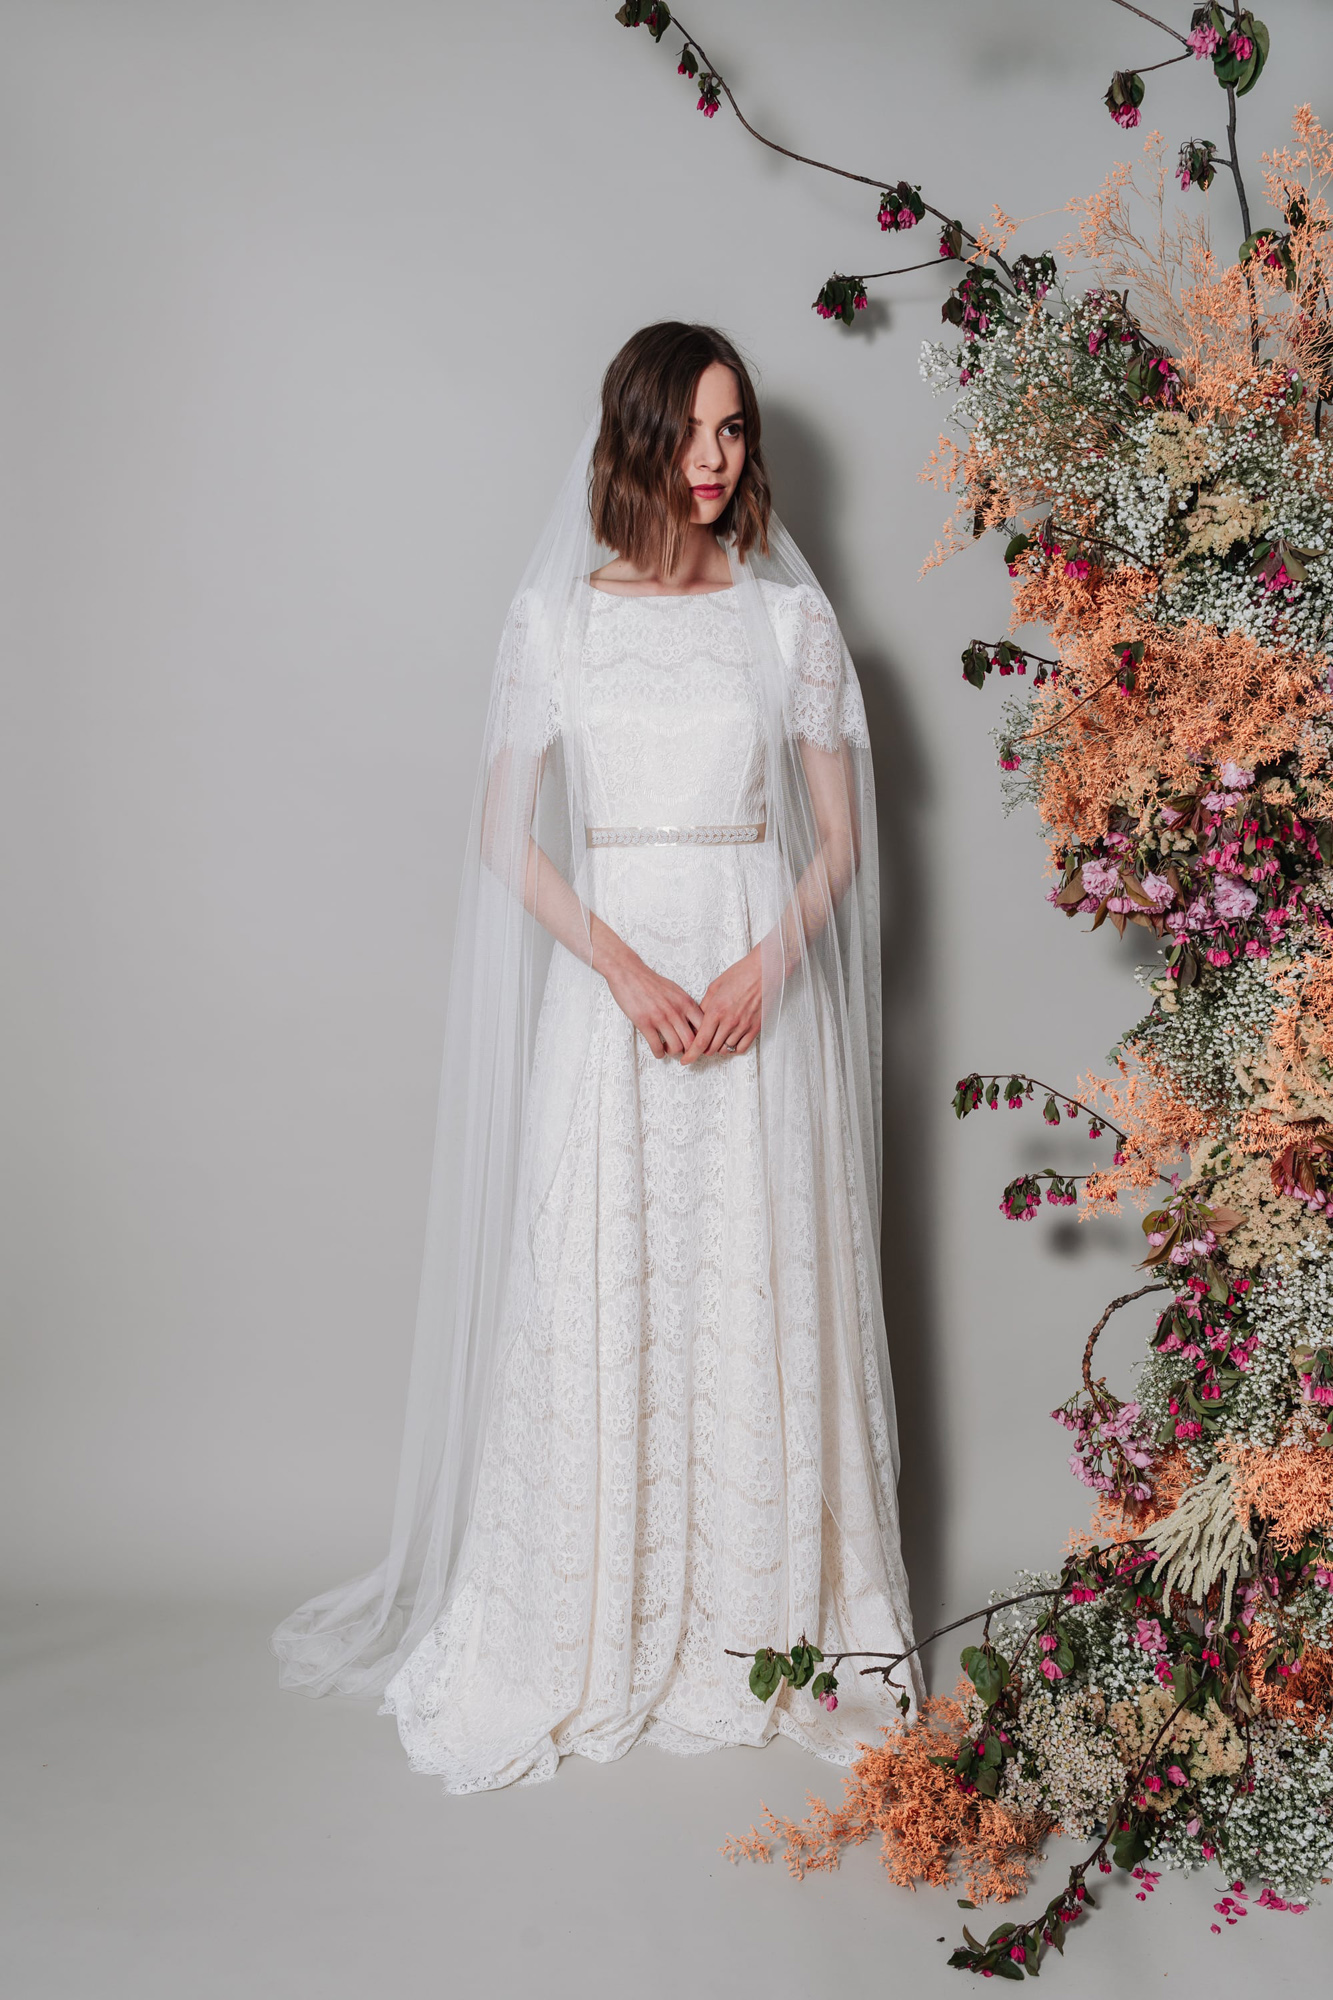 Kate-Beaumont-Sheffield-Bohemian-Dahlia-Panelled-Lace-Silk-Wedding-Gown-13.jpg